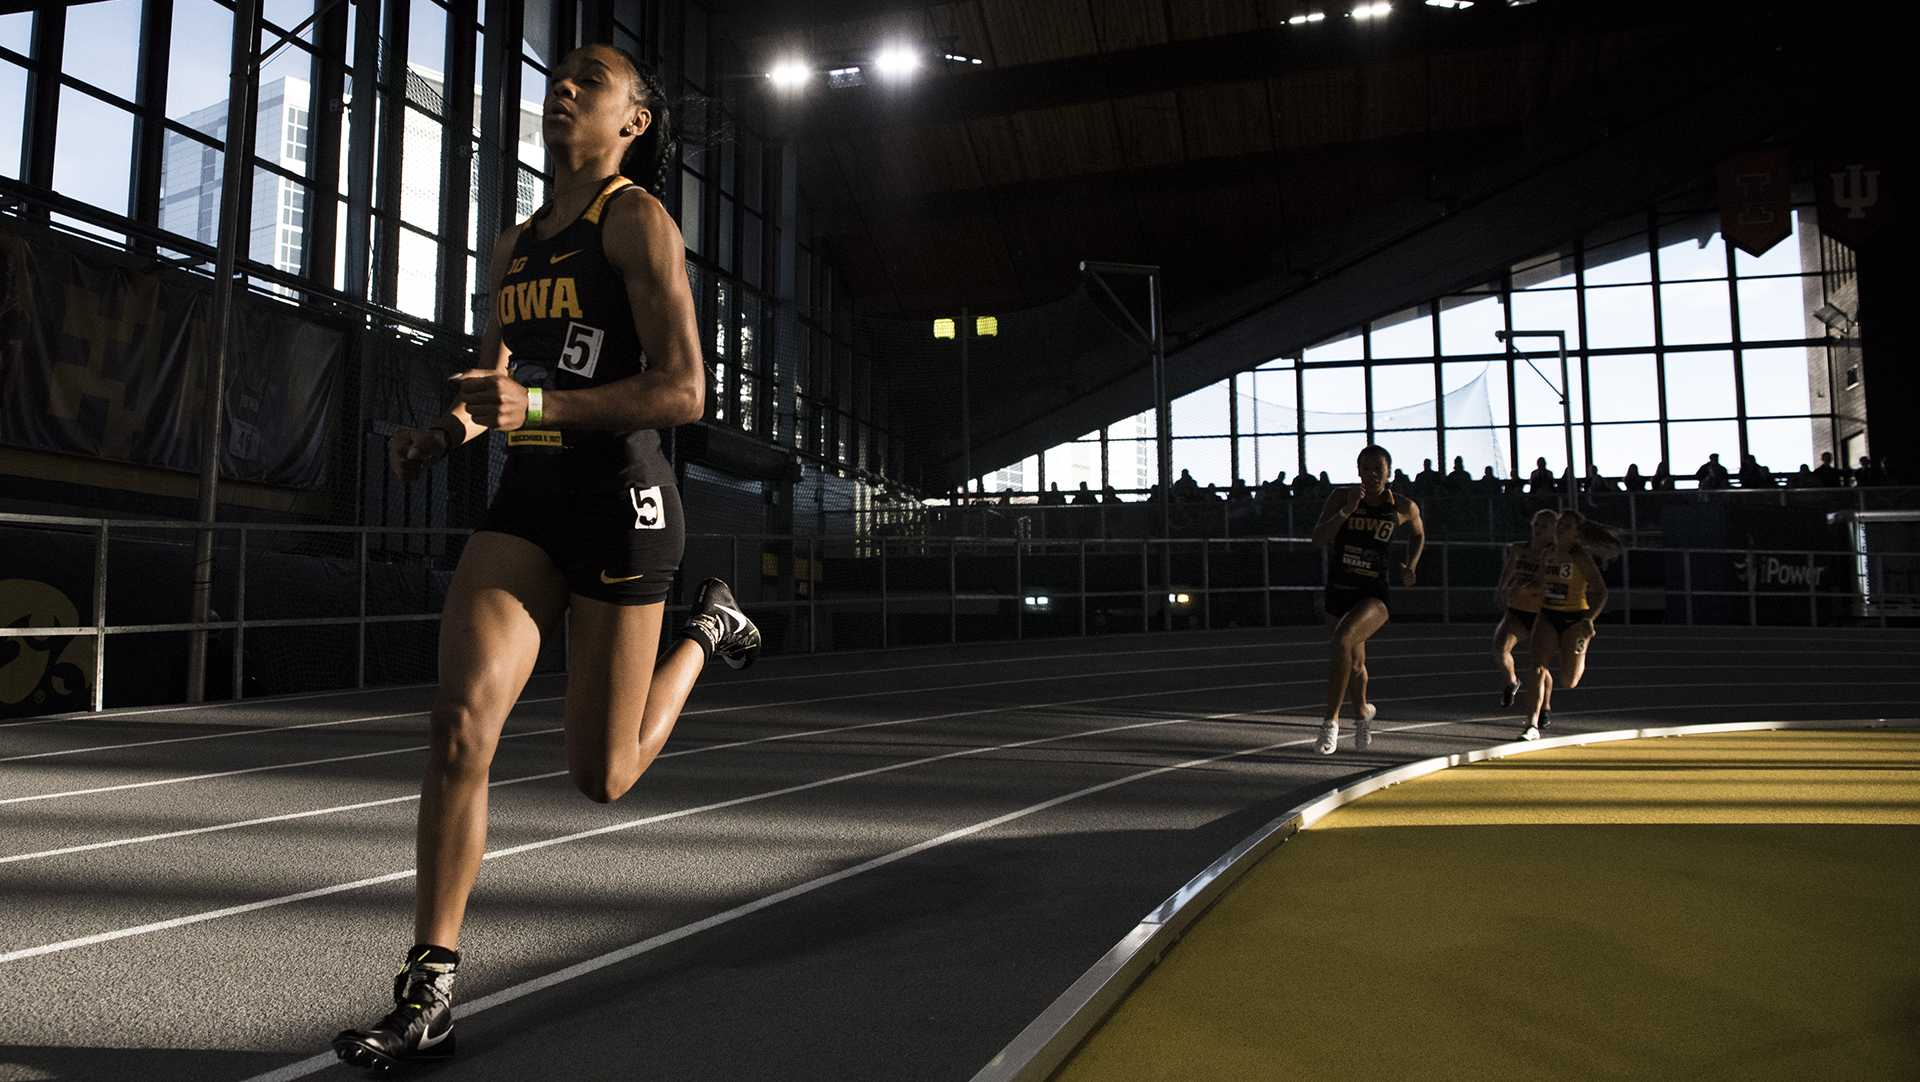 Iowa's Briana Guillory participates in the Women's 600m Run during the annual Black and Gold Intrasquad Meet at the UI Recreation Building on Saturday, Dec. 9, 2017. Guillory finished first with a time of 1:30:01. The Hawkeyes will host the next meet on January 13. (Ben Allan Smith/The Daily Iowan)